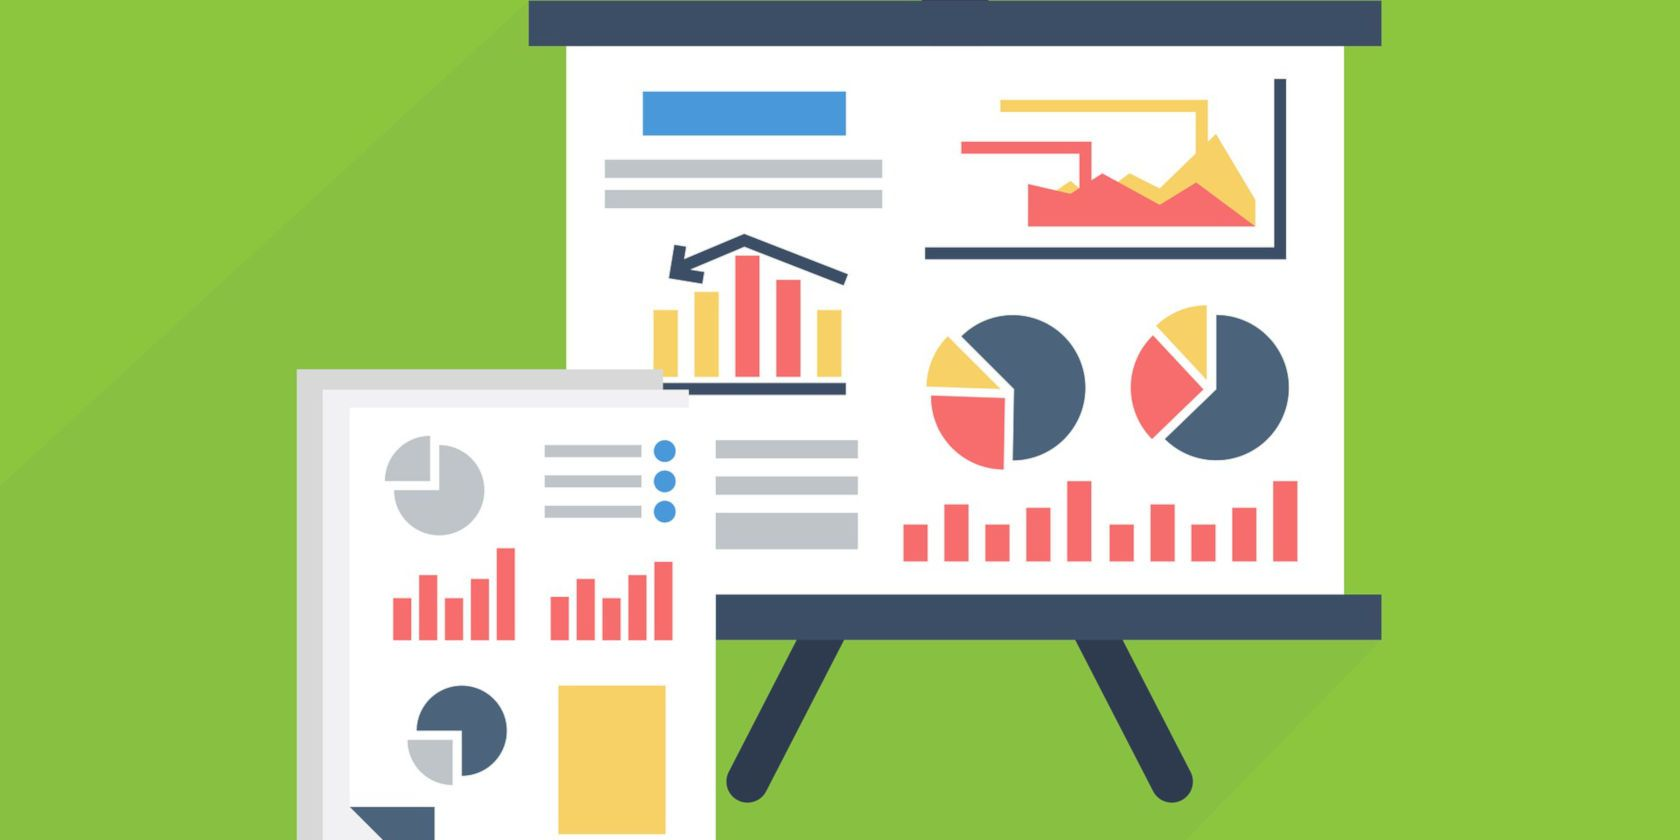 MakeUseOf | The 5 Best Free Tools to Make Infographics Online